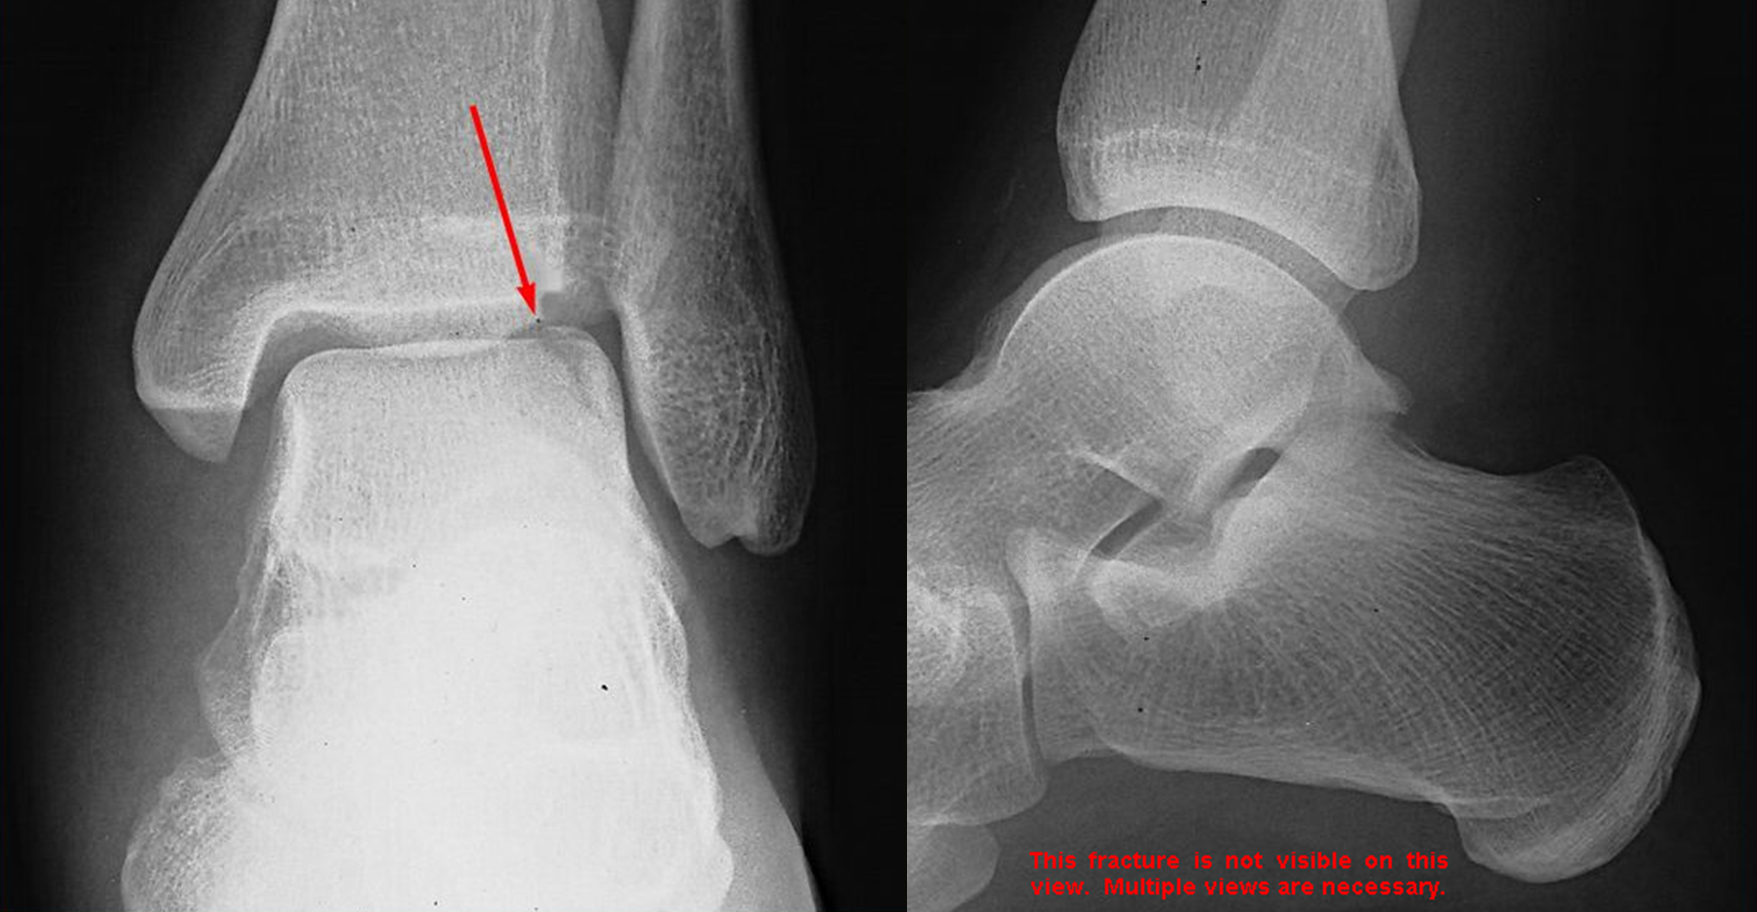 Osteochondral Fracture Of The Talar Dome